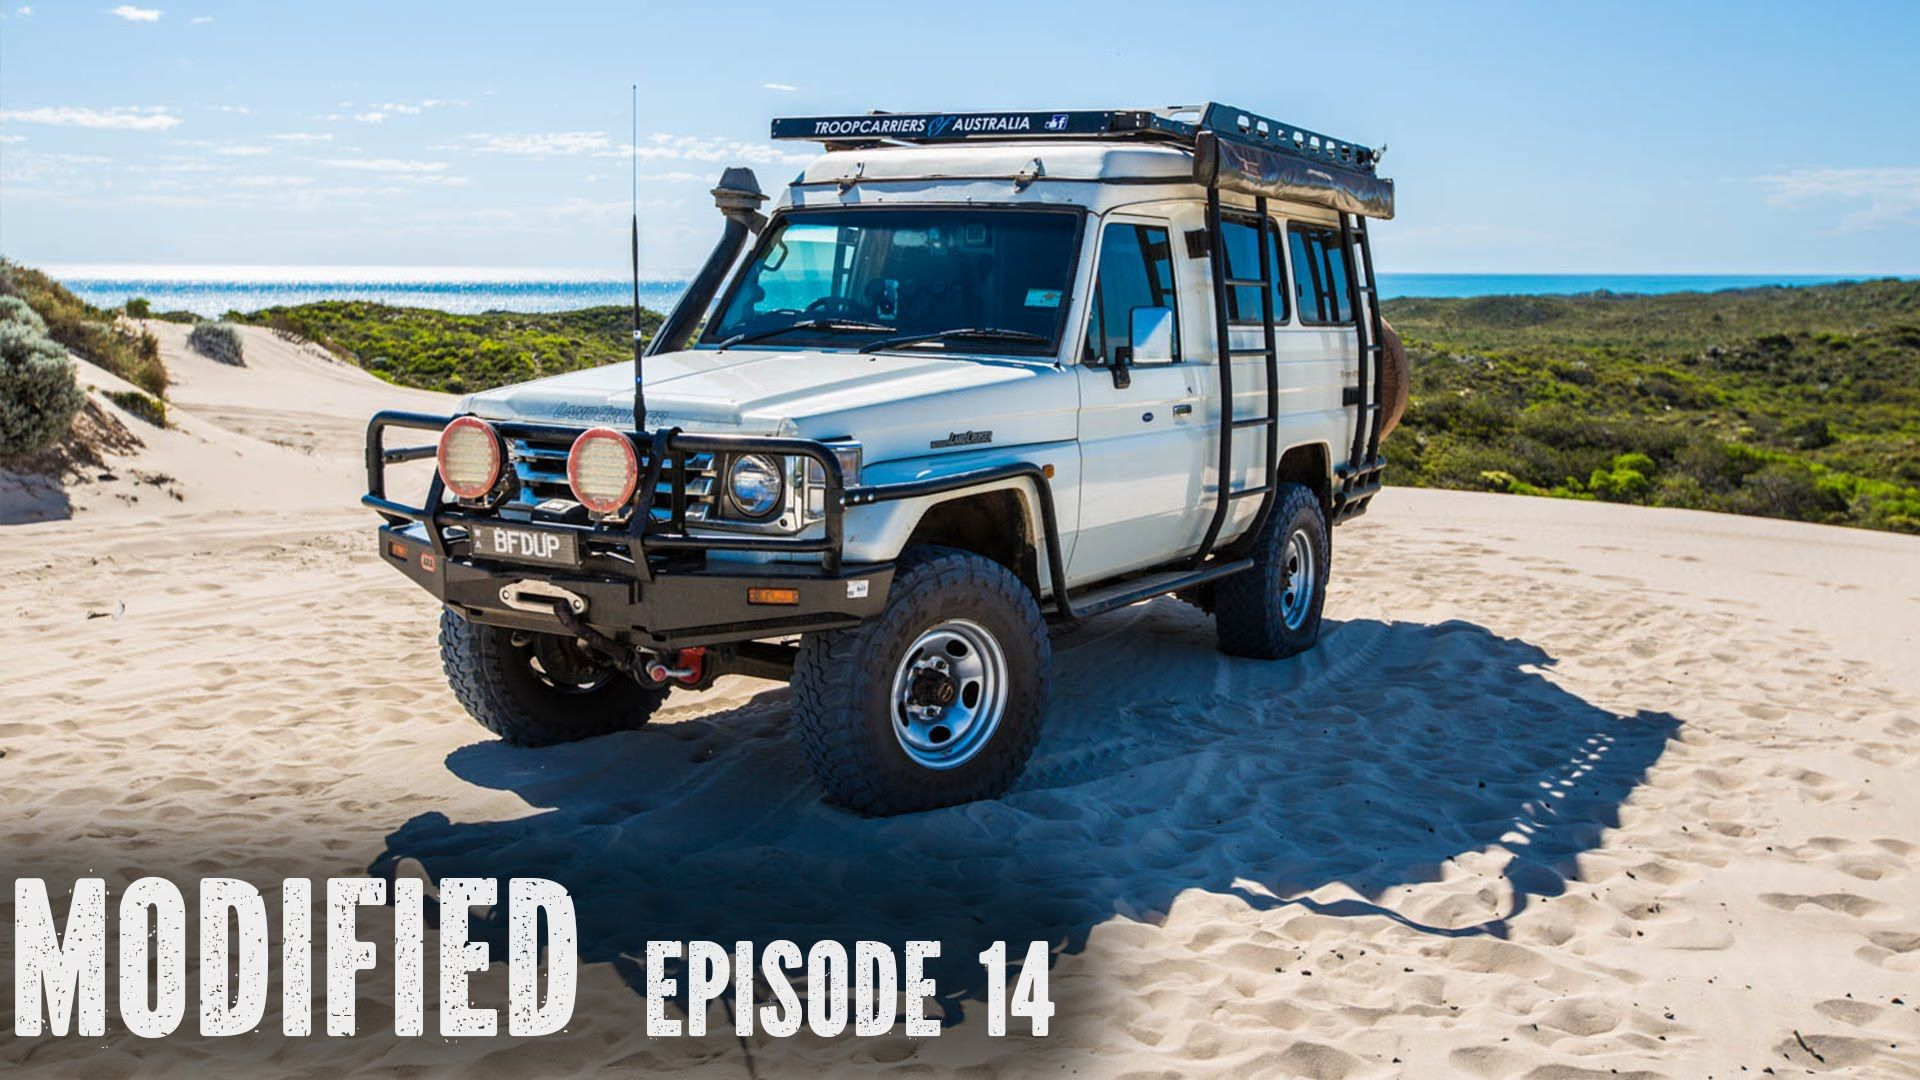 Landcruiser Troopy Camper Modified Episode 14 Land Cruiser Fj Cruiser Camper Conversion